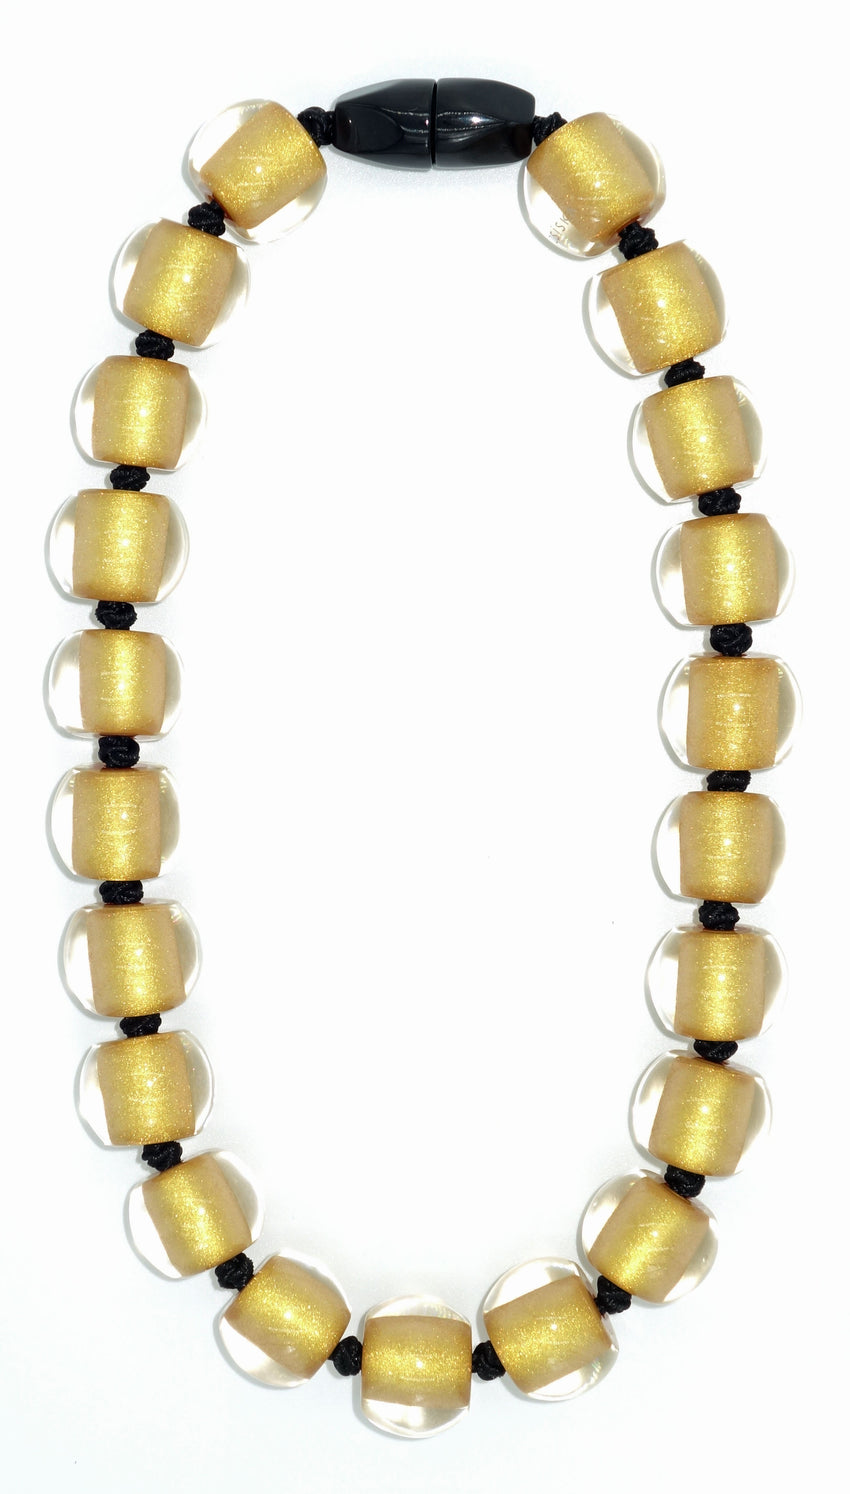 4010117G00PQ20 Colourful Beads Gold G00P Q20